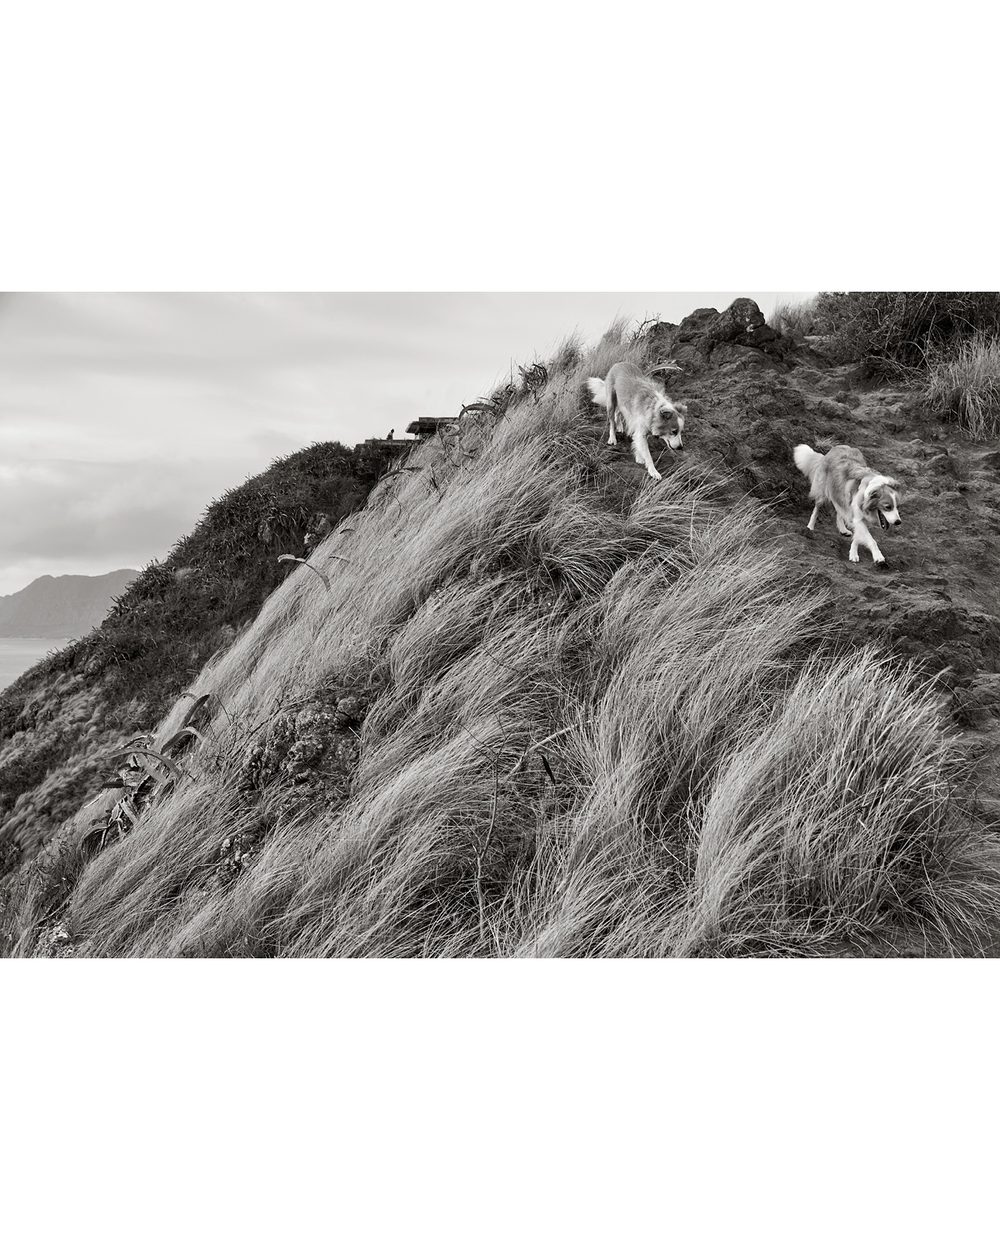 HAWAIIAN DOG'S LIFE